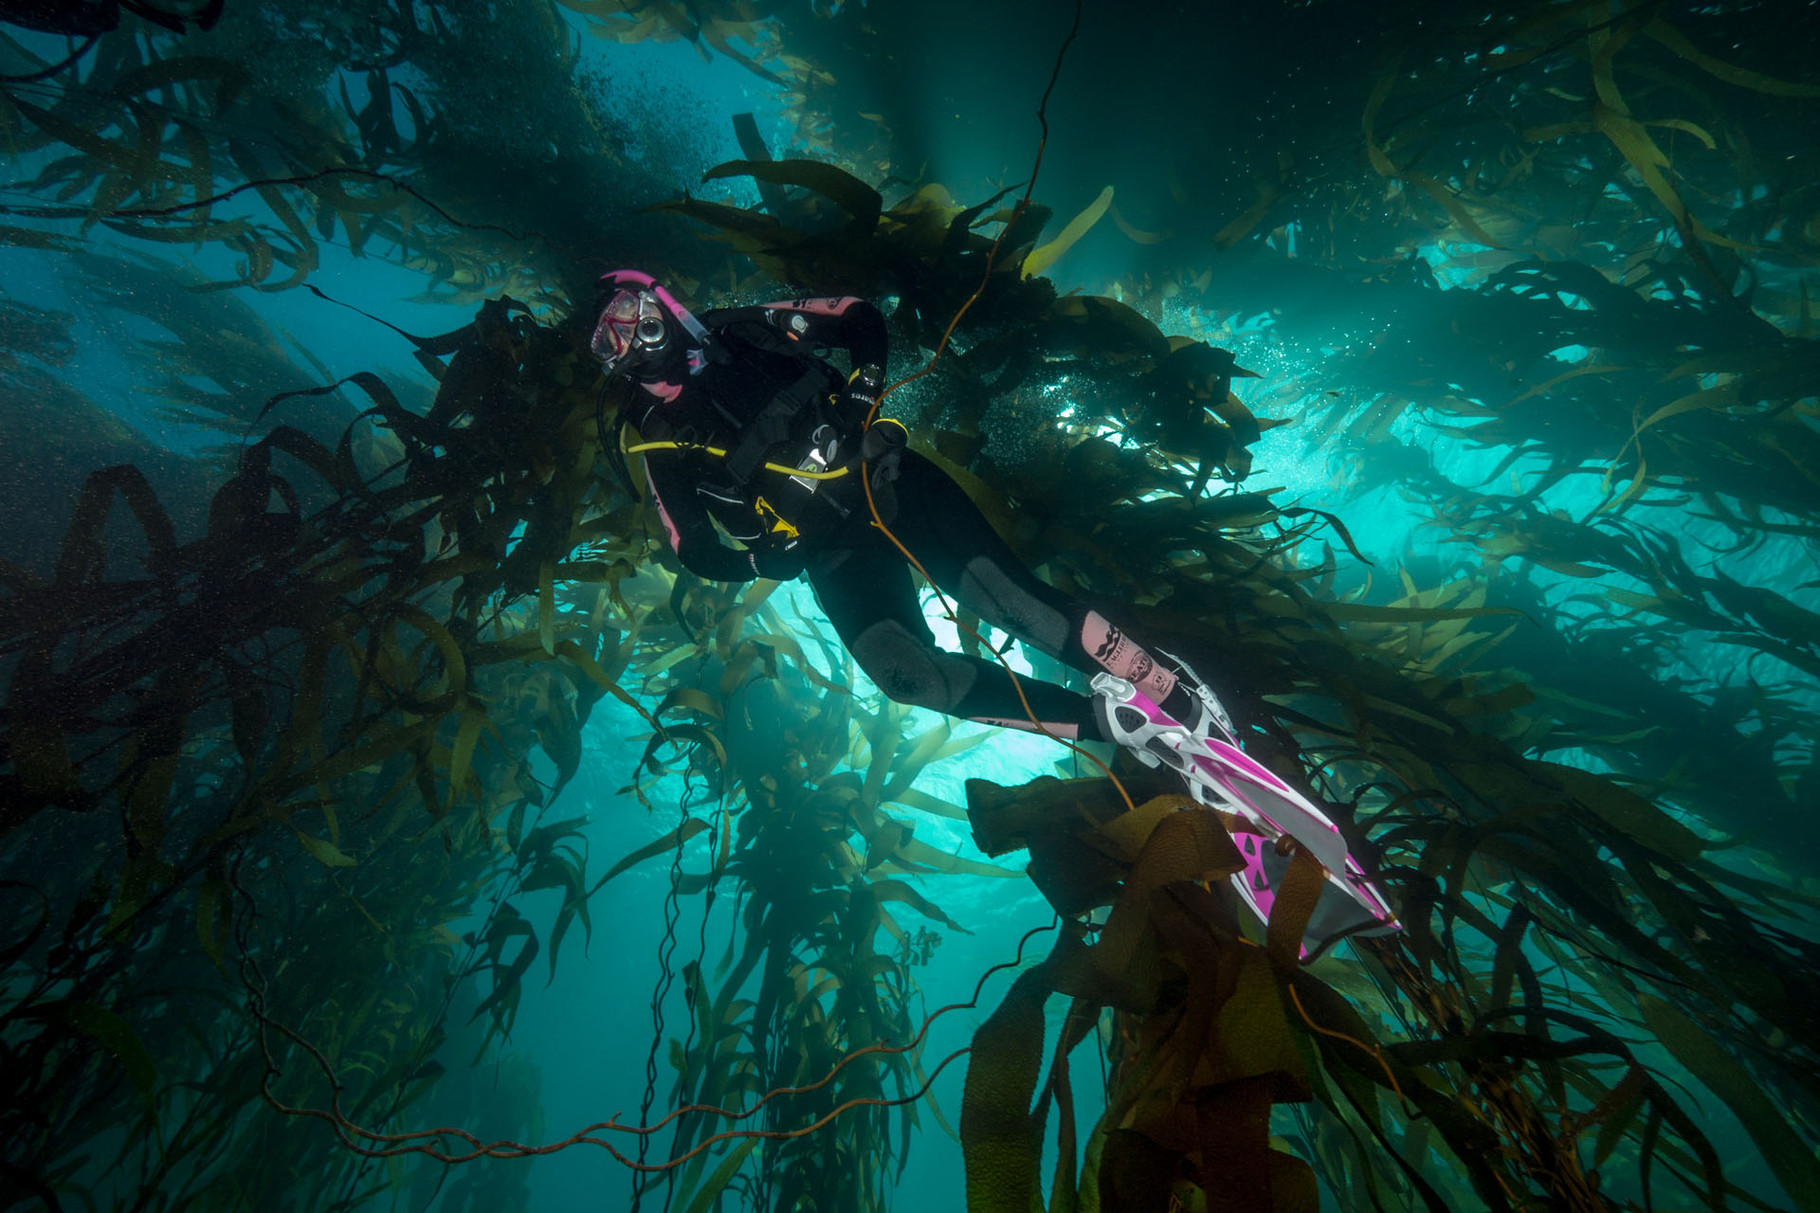 Giant kelp forest (up to 20m high)